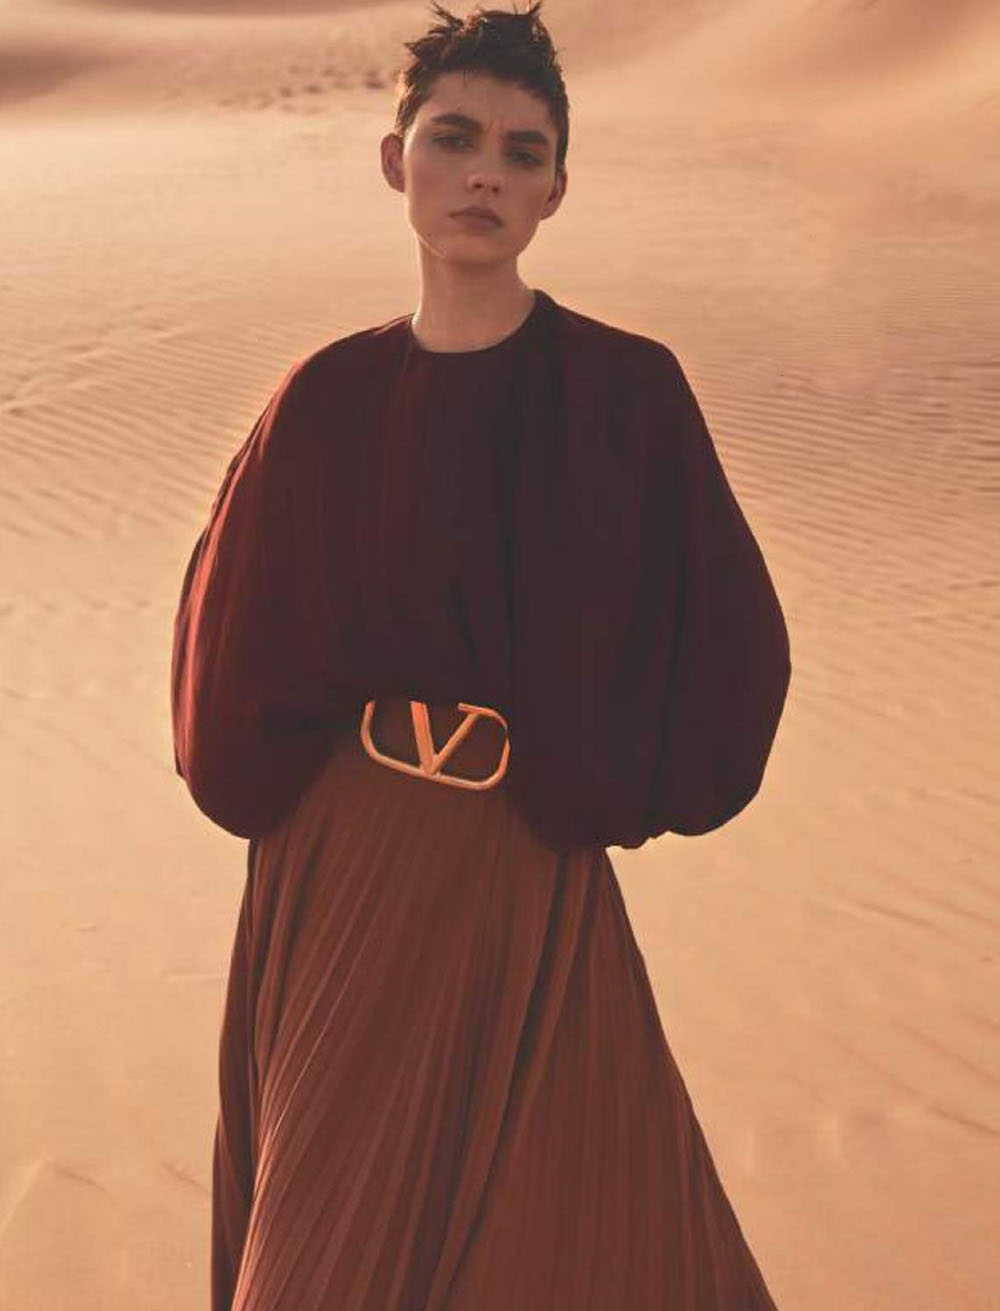 Ninouk Akkerman by Stefano Galuzzi for Harper's Bazaar Russia July 2019